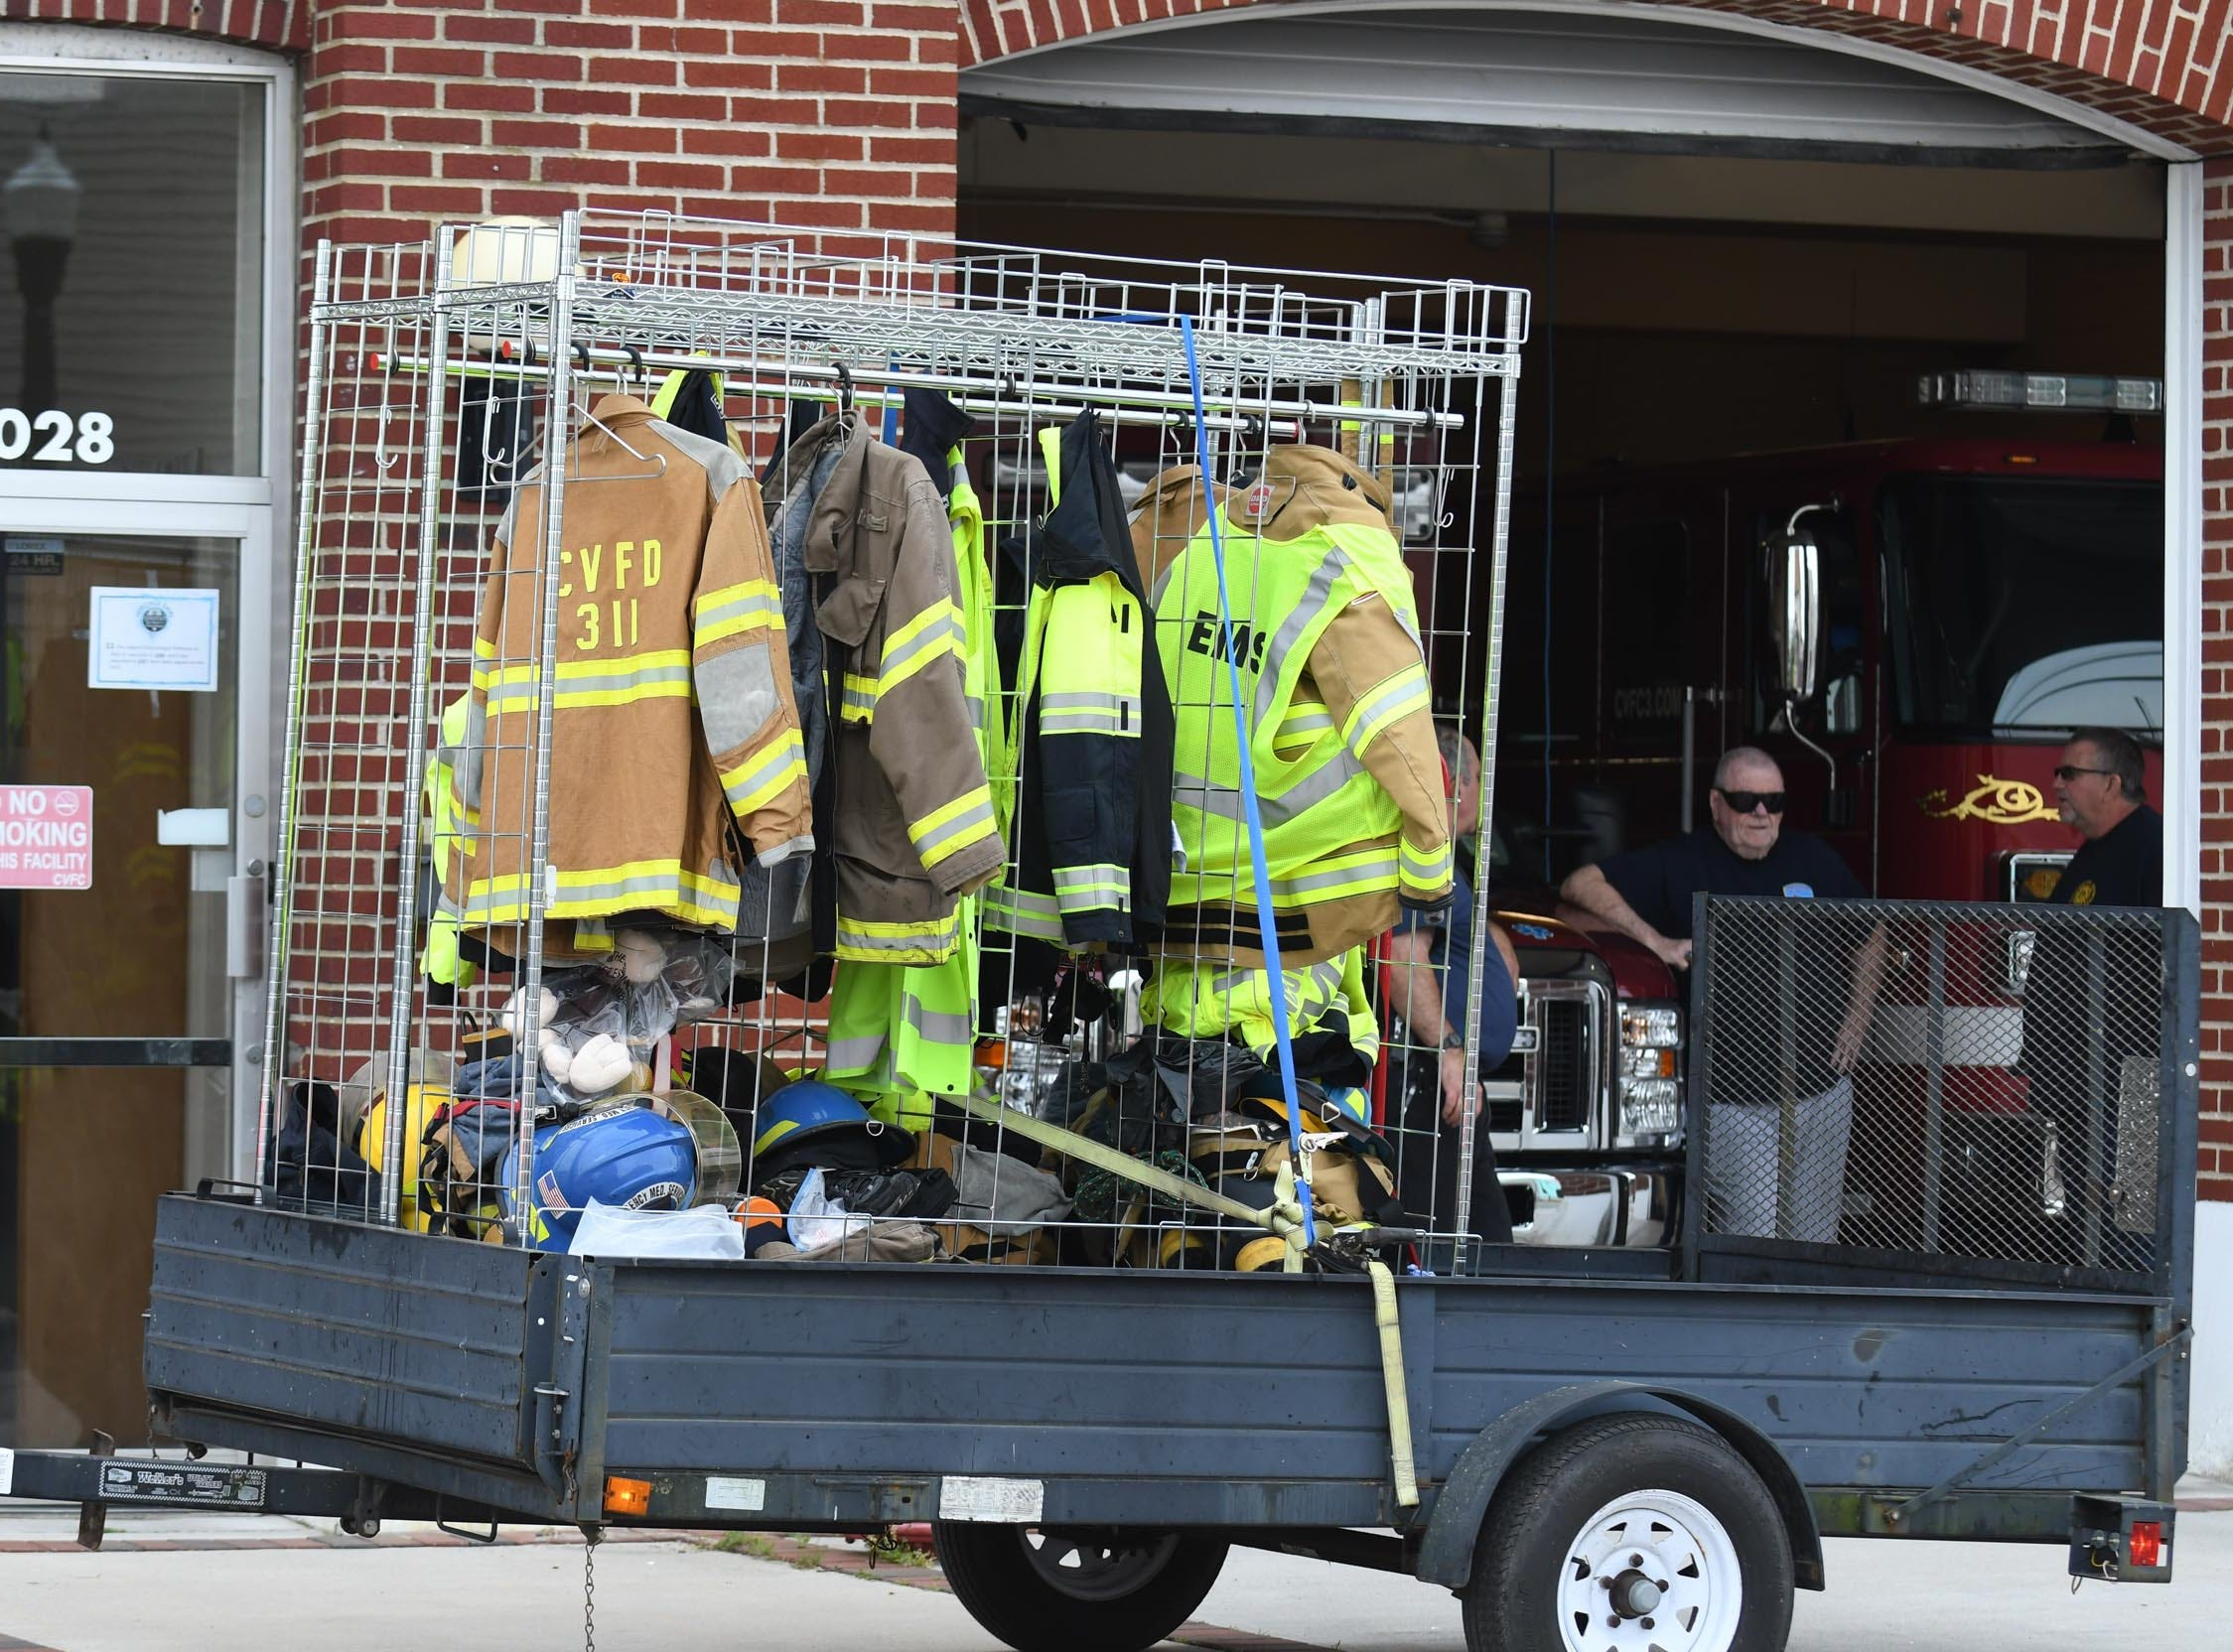 The Chincoteague Volunteer Fire Department has started the move from the old building to the new building located at 5175 Chicken City Road in Chincoteague, Va. on Wednesday, May 1, 2019.